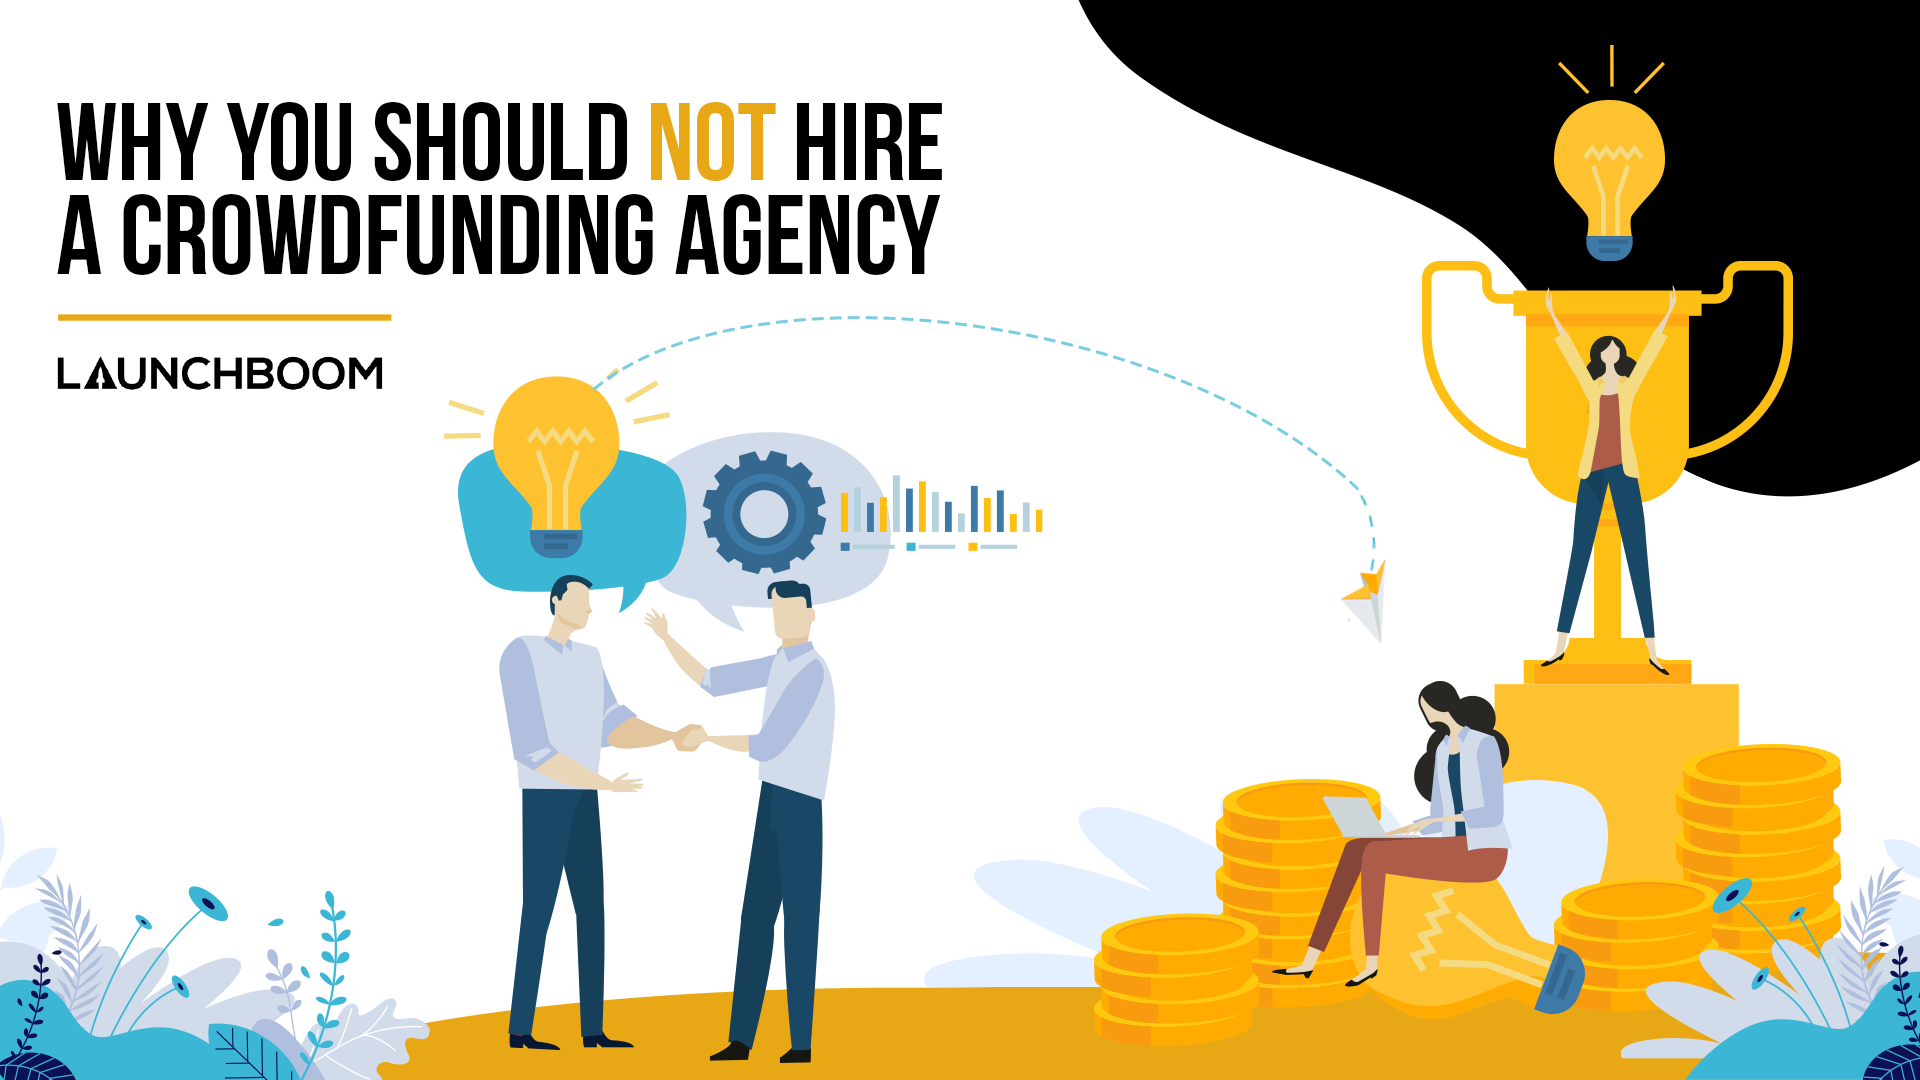 Why most people should NOT hire a crowdfunding agency